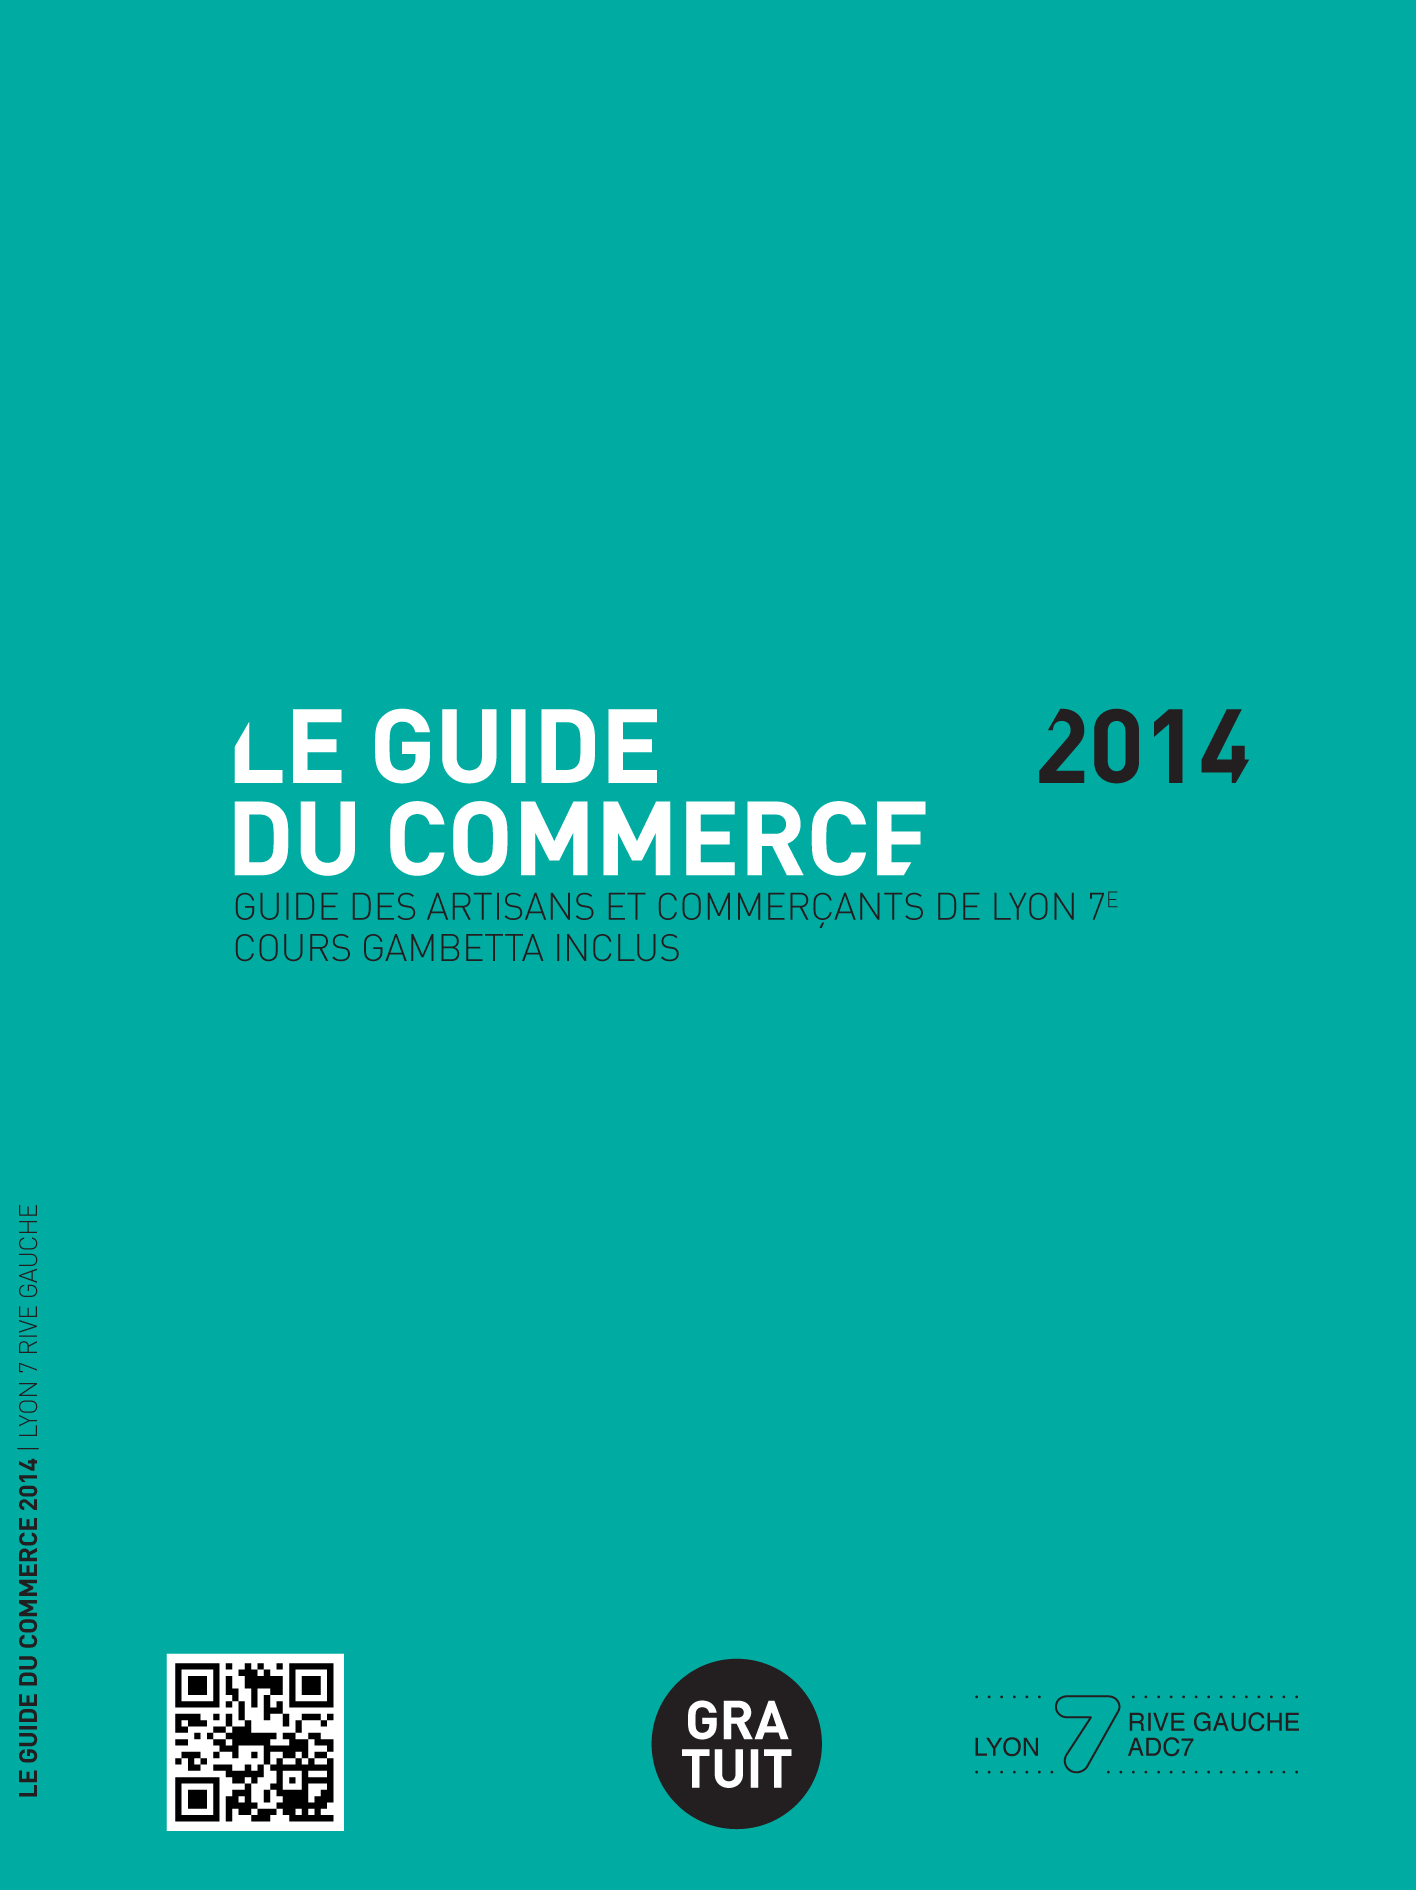 Guide du Commerce Lyon 7